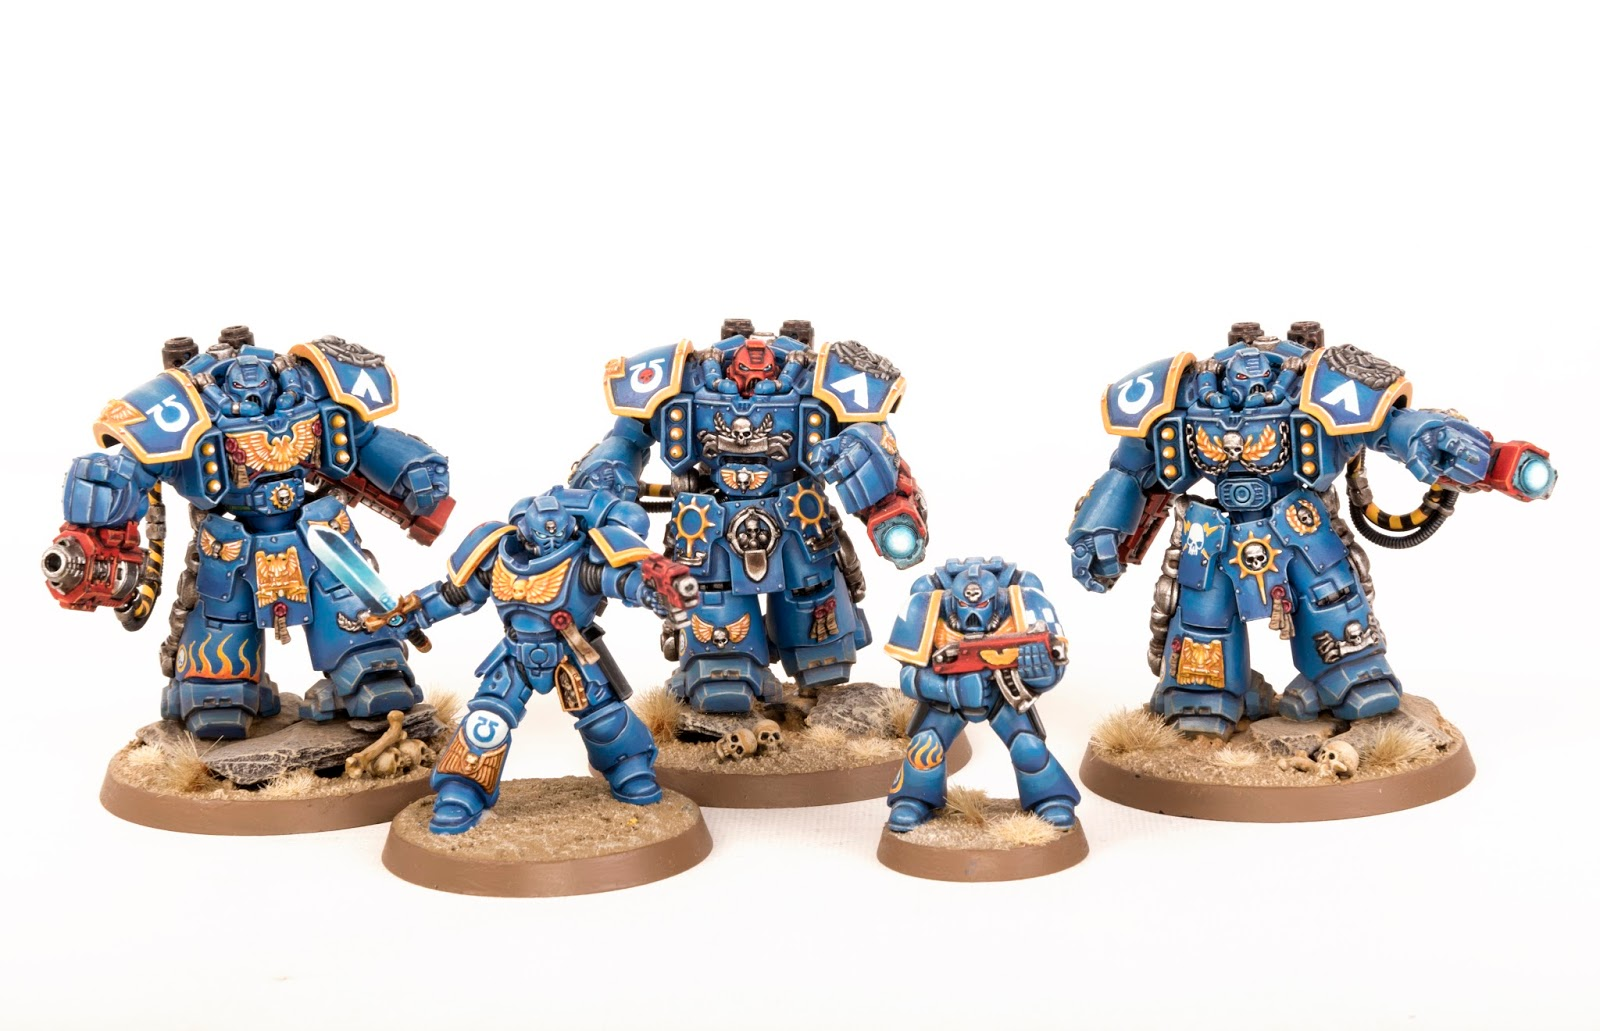 323ff2f7ec05 It s no surprise to regular readers that I love a box set. So when Dark  Imperium dropped I had to get it. I m so happy to be painting Ultramarines  again.